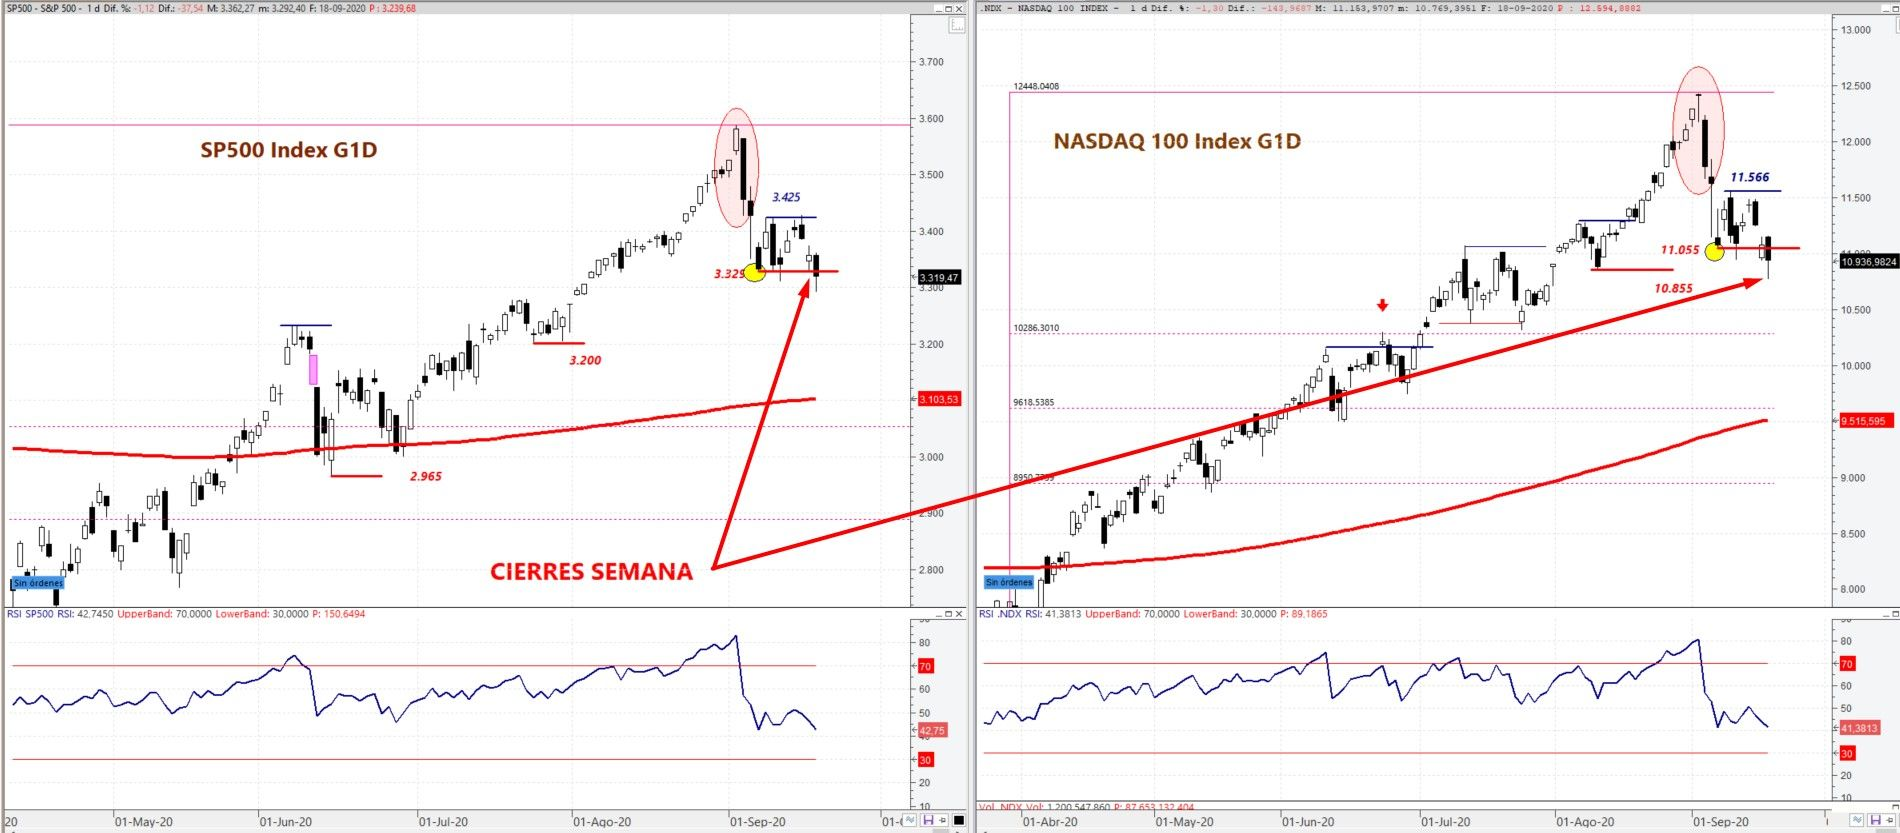 S&P 500 y NASDAQ 100 (index) en gráfico diario